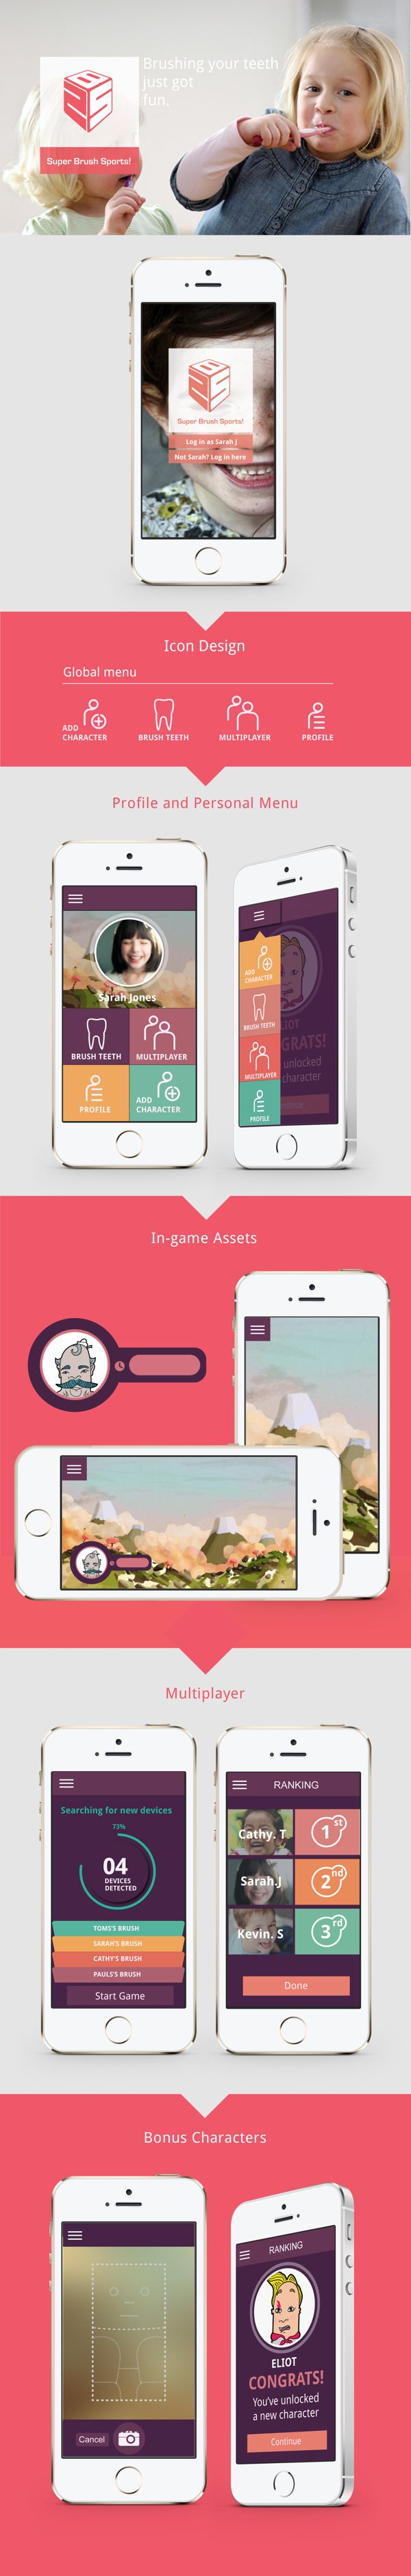 Super Brush Sports! Mobile Game by Morgan Mulvaney, via Behance